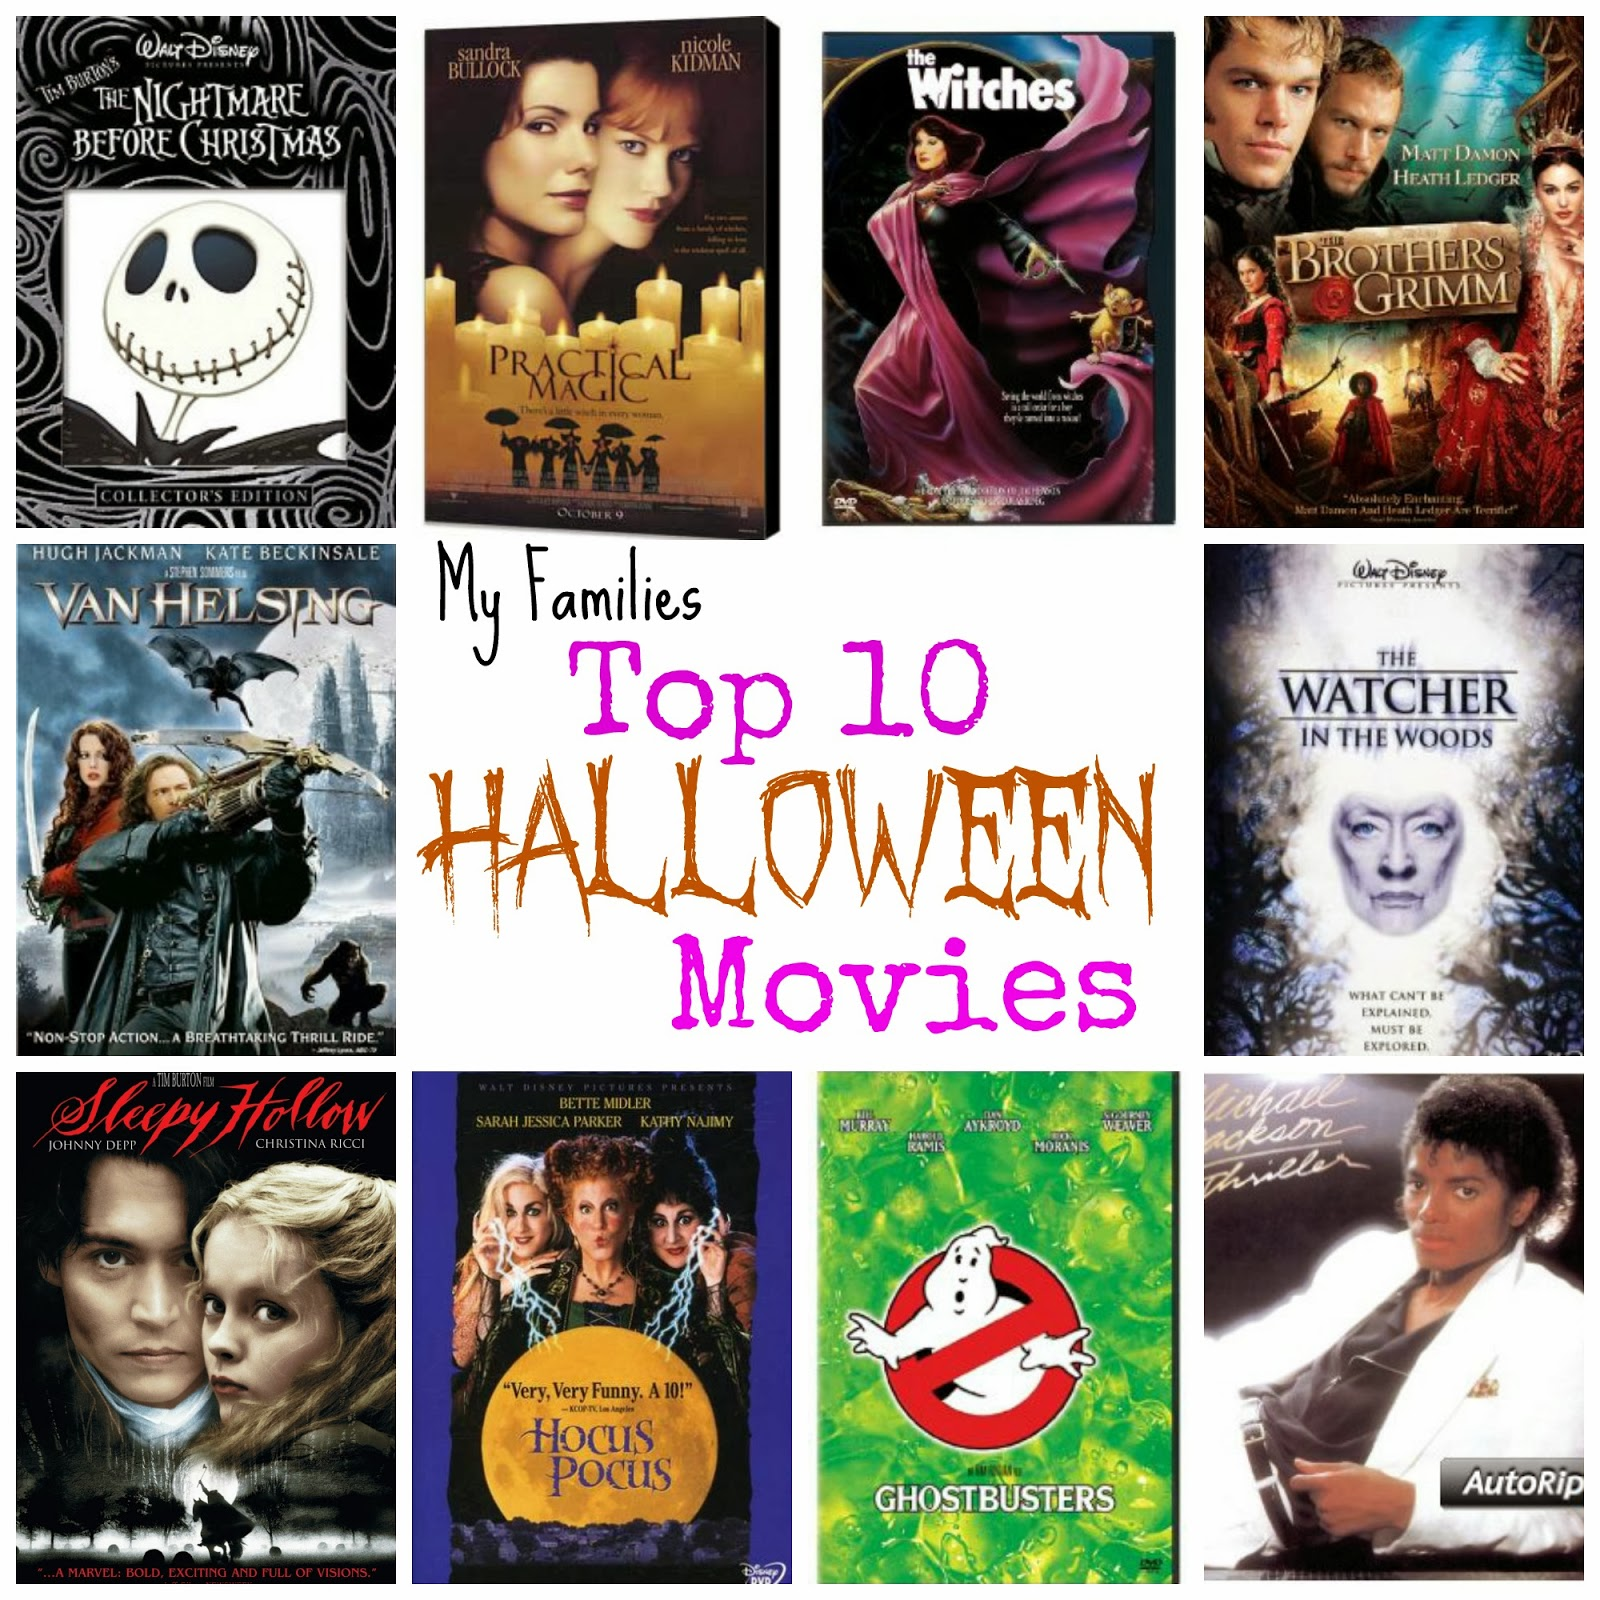 My families Top 10 Favorite Halloween Movies - Food Crafts and Family